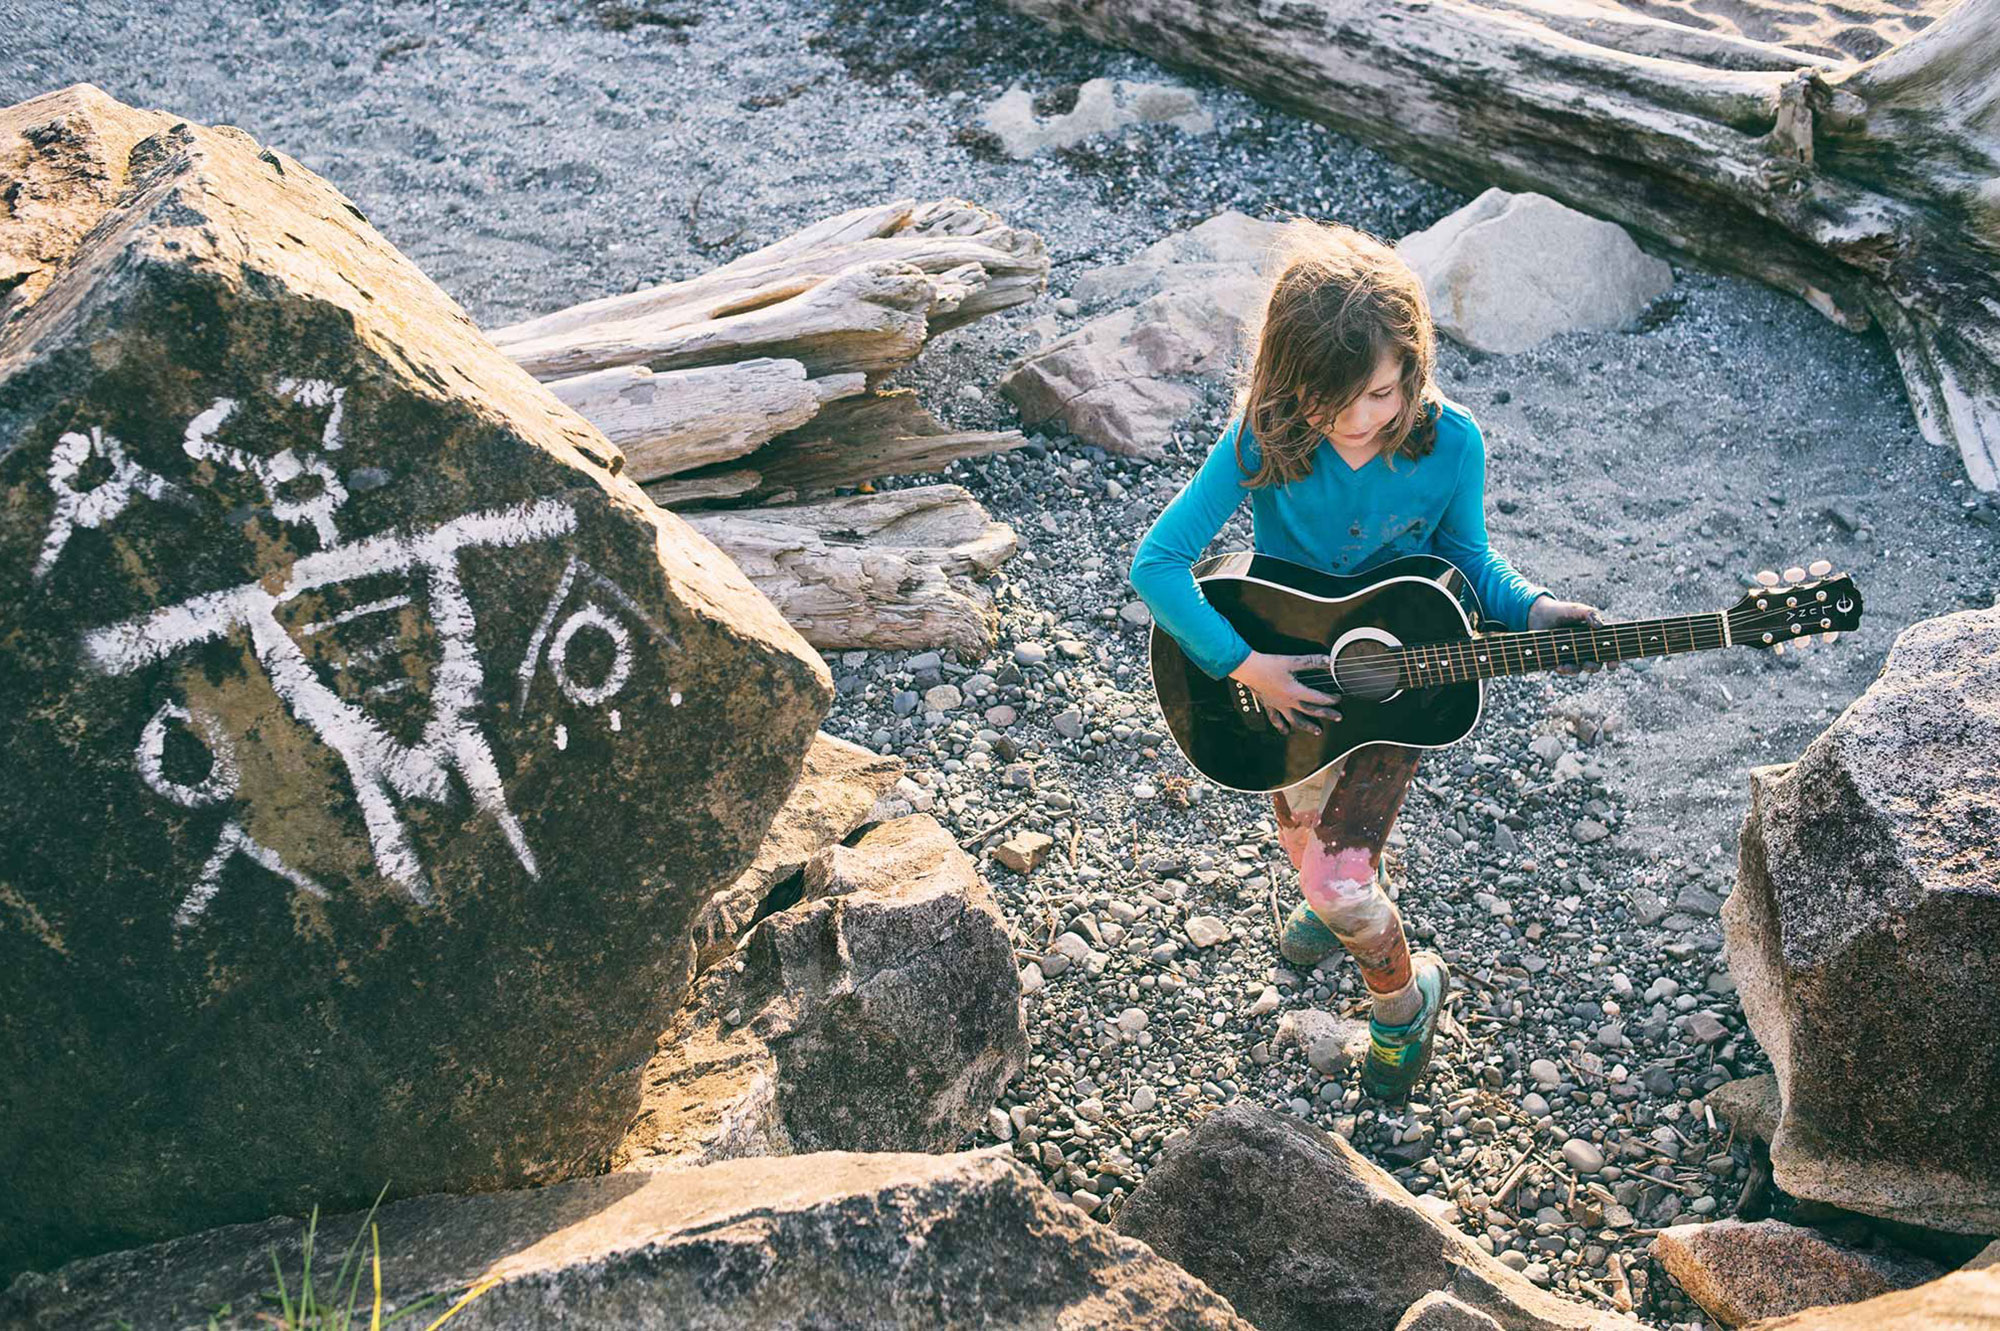 Child playing guitar at Carkeek Park in Seattle by the graffiti